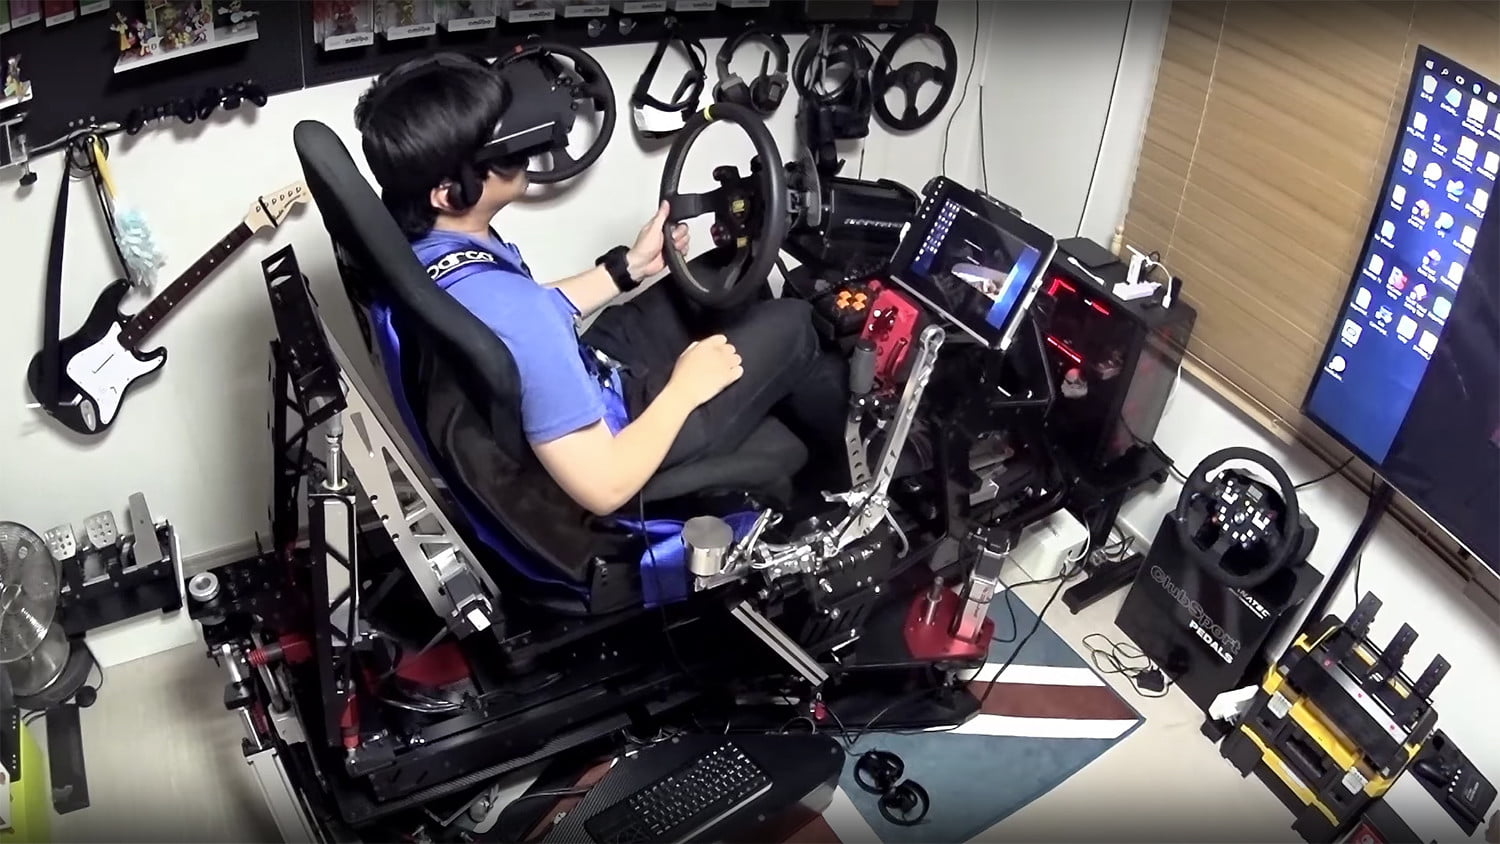 Check Out This Amazing 25 000 Racing Simulator Build Digital Trends